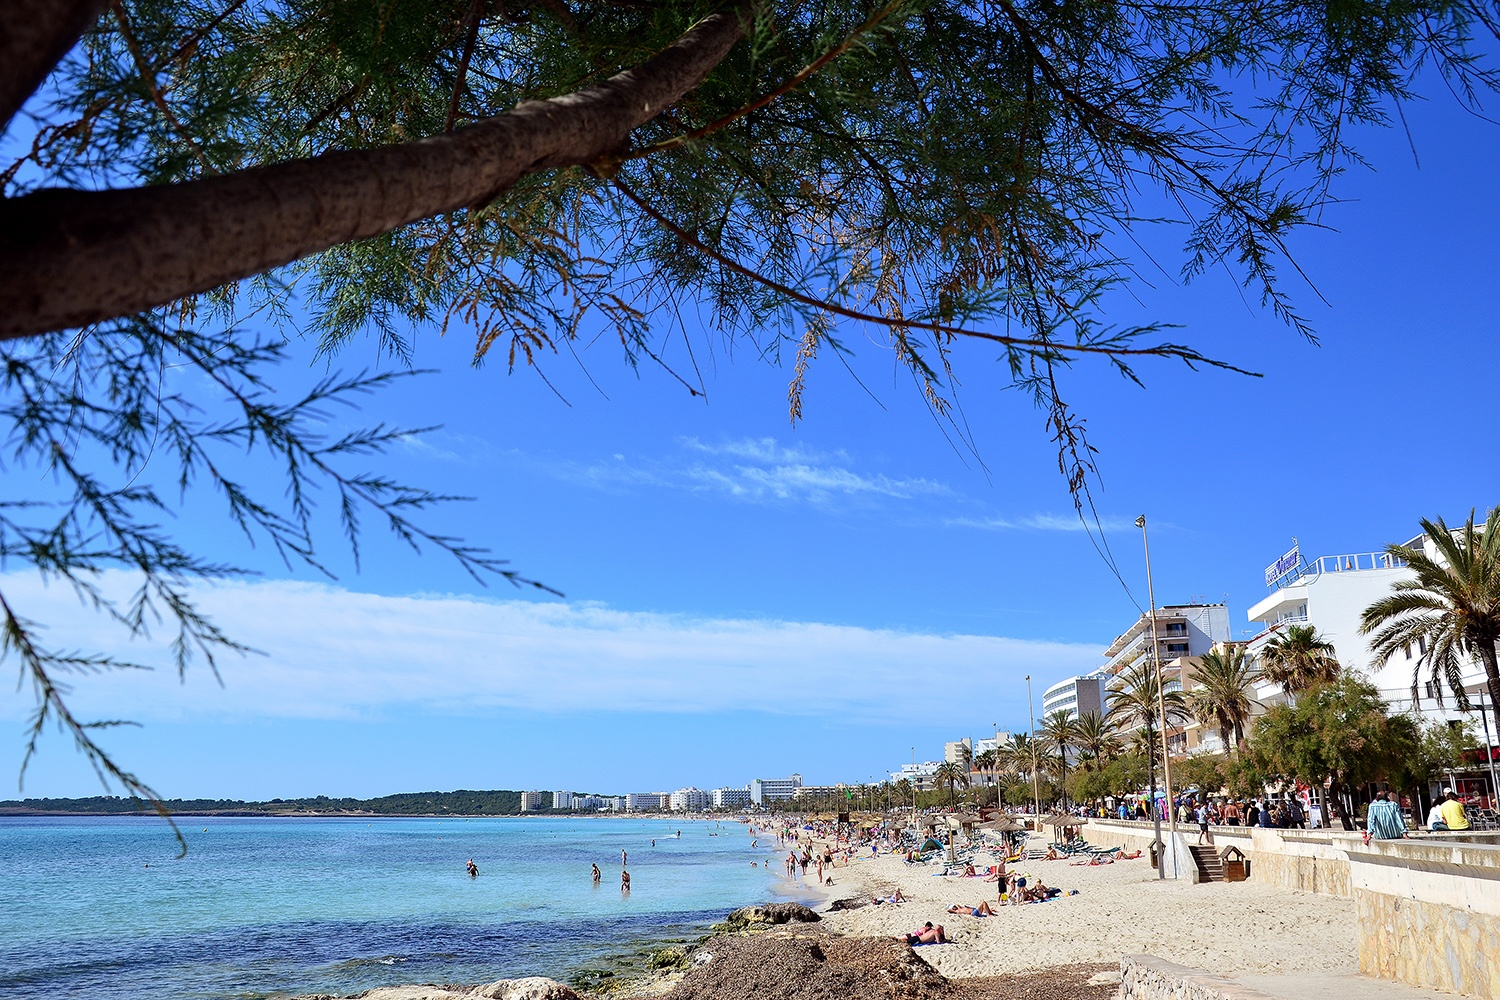 Urlaub In Cala Millor Hotels And Destinations A Blog Dedicated To Travel